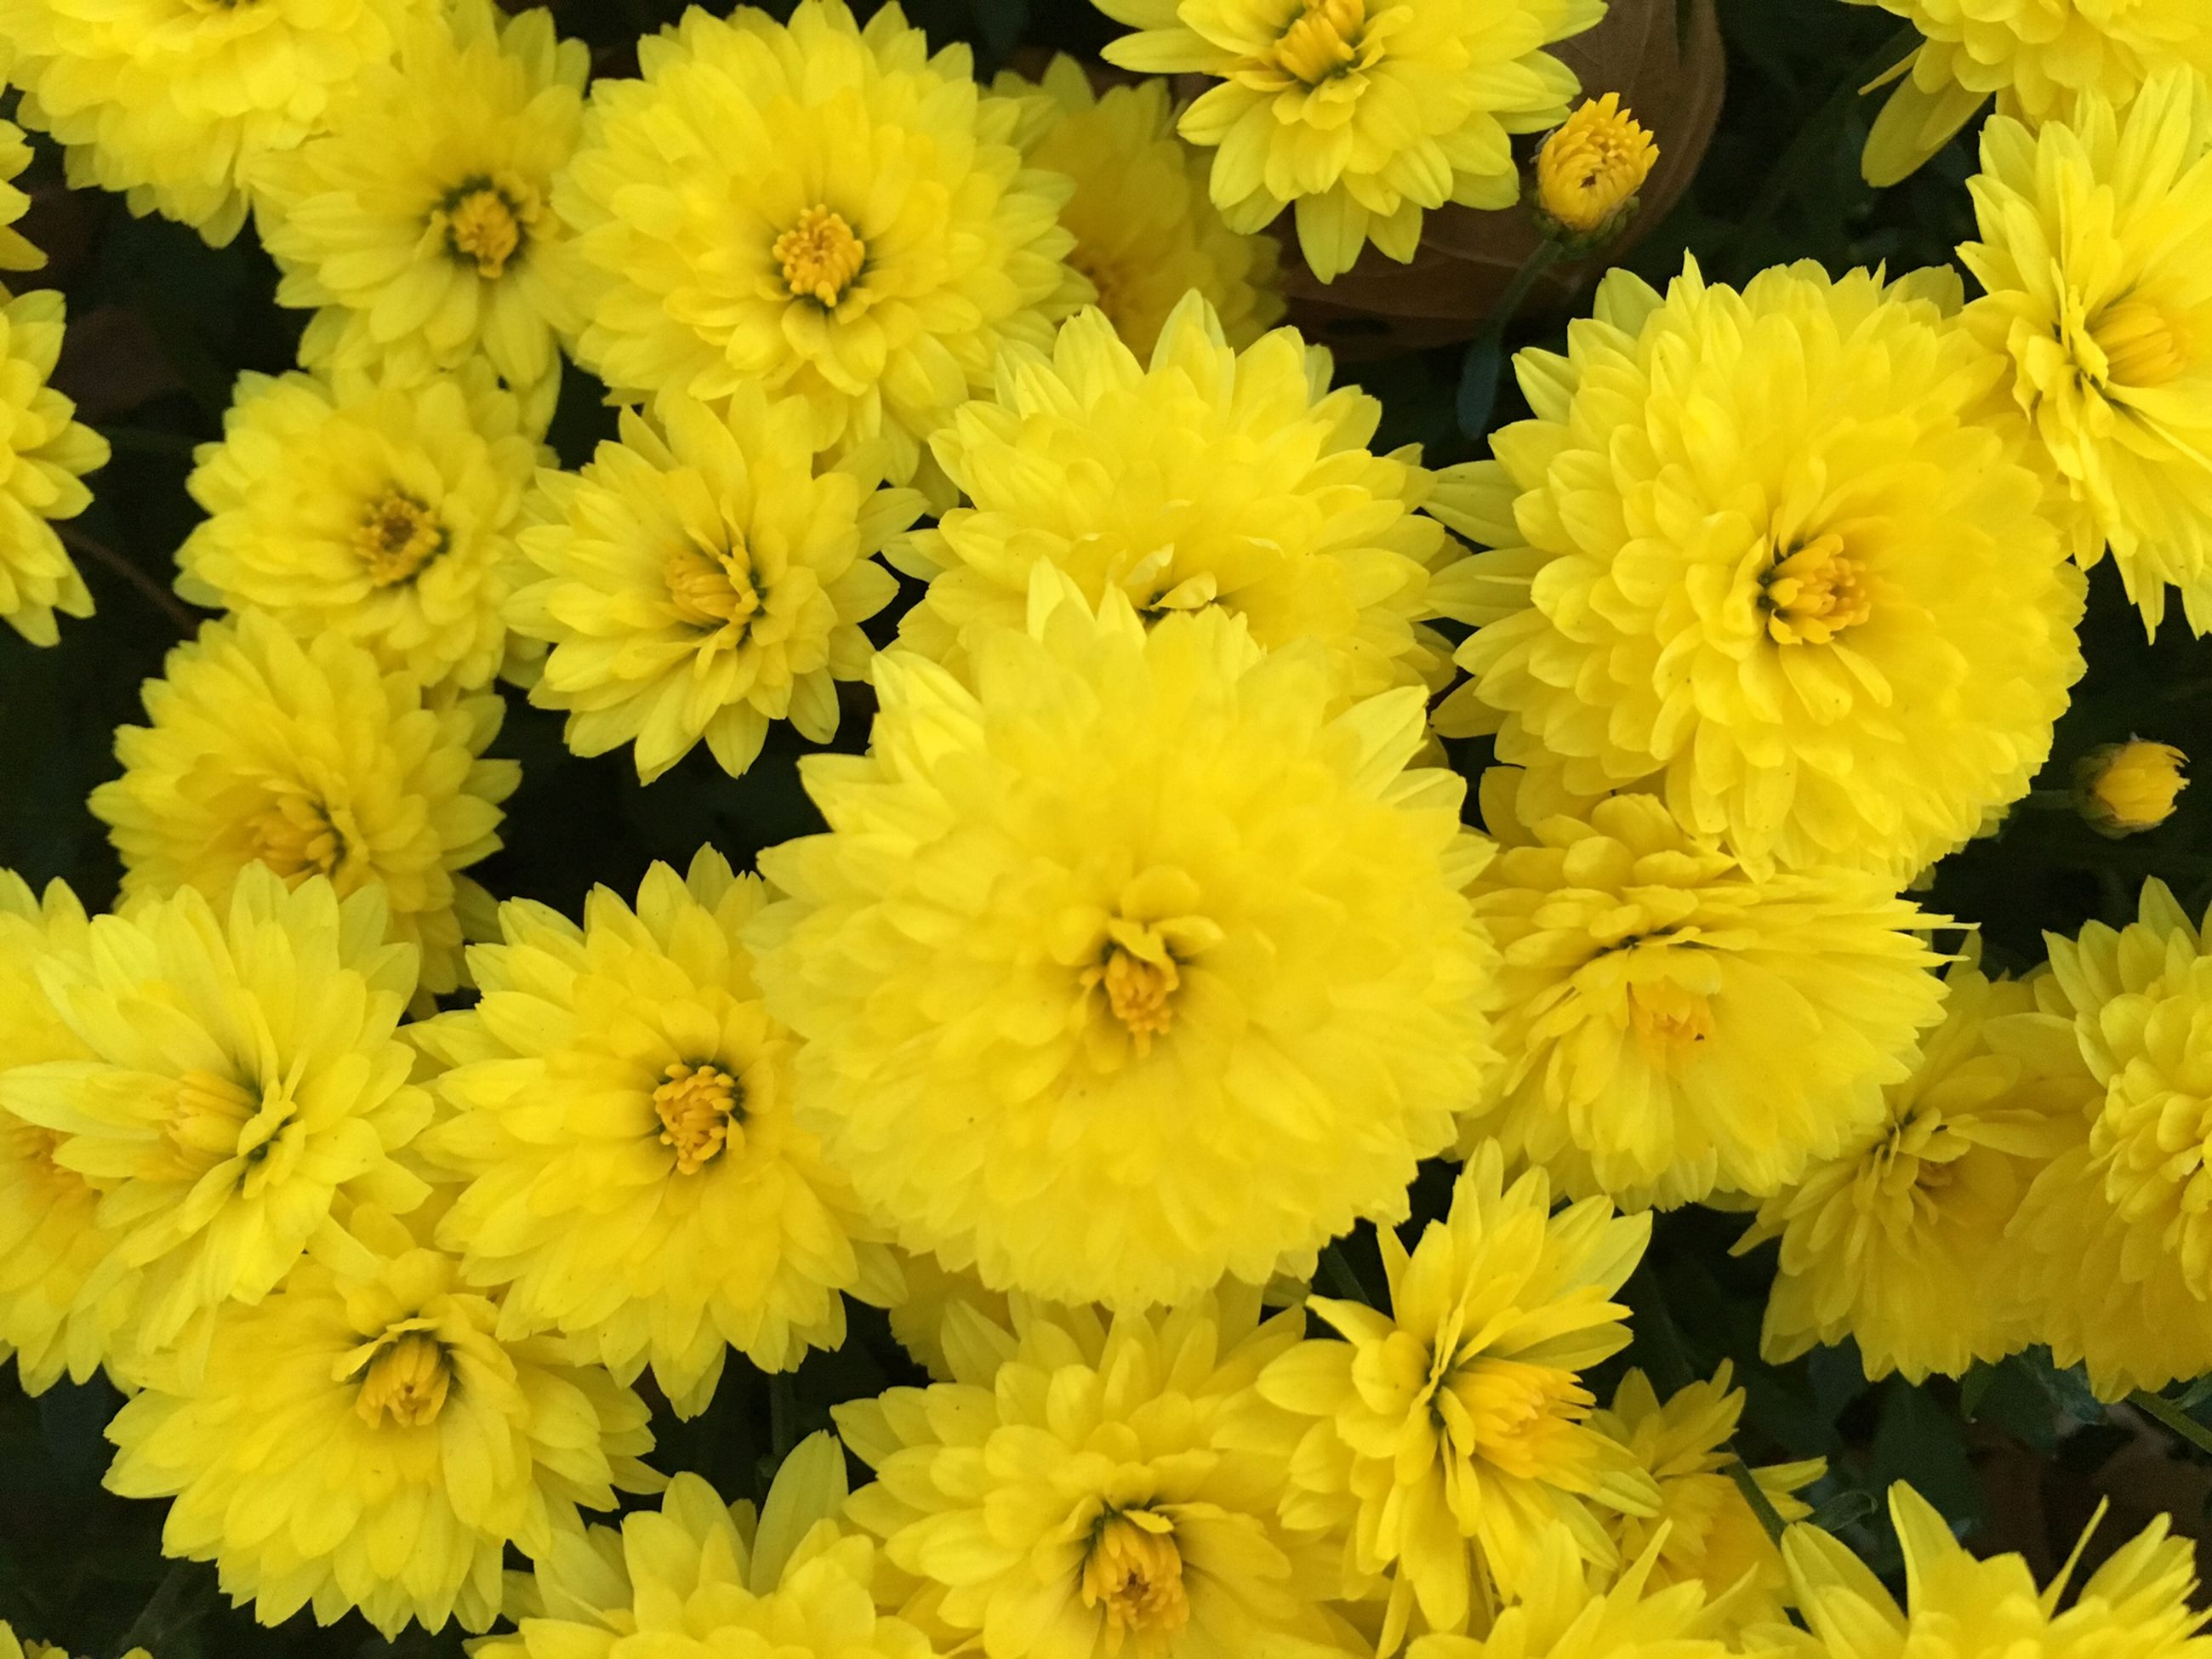 flower, yellow, petal, freshness, full frame, fragility, flower head, backgrounds, beauty in nature, close-up, growth, high angle view, nature, indoors, abundance, blooming, no people, plant, vibrant color, bunch of flowers